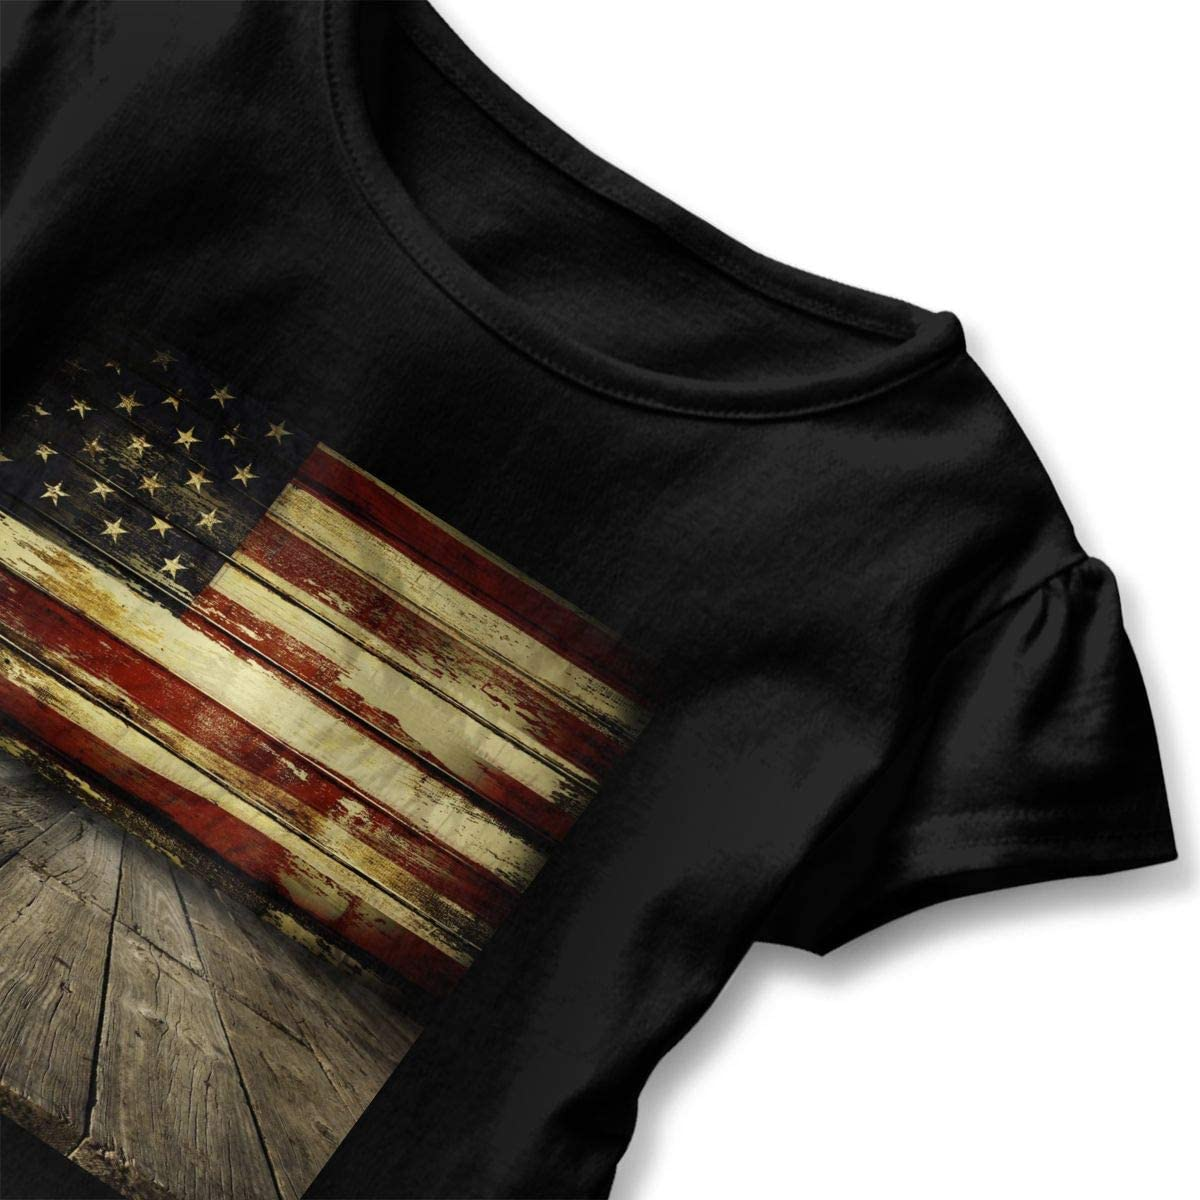 American Flag On Wooden Planks Wall Baby Girls Short Sleeve T-Shirt Flounced Summer Shirt Dress for 2-6 Years Old Baby